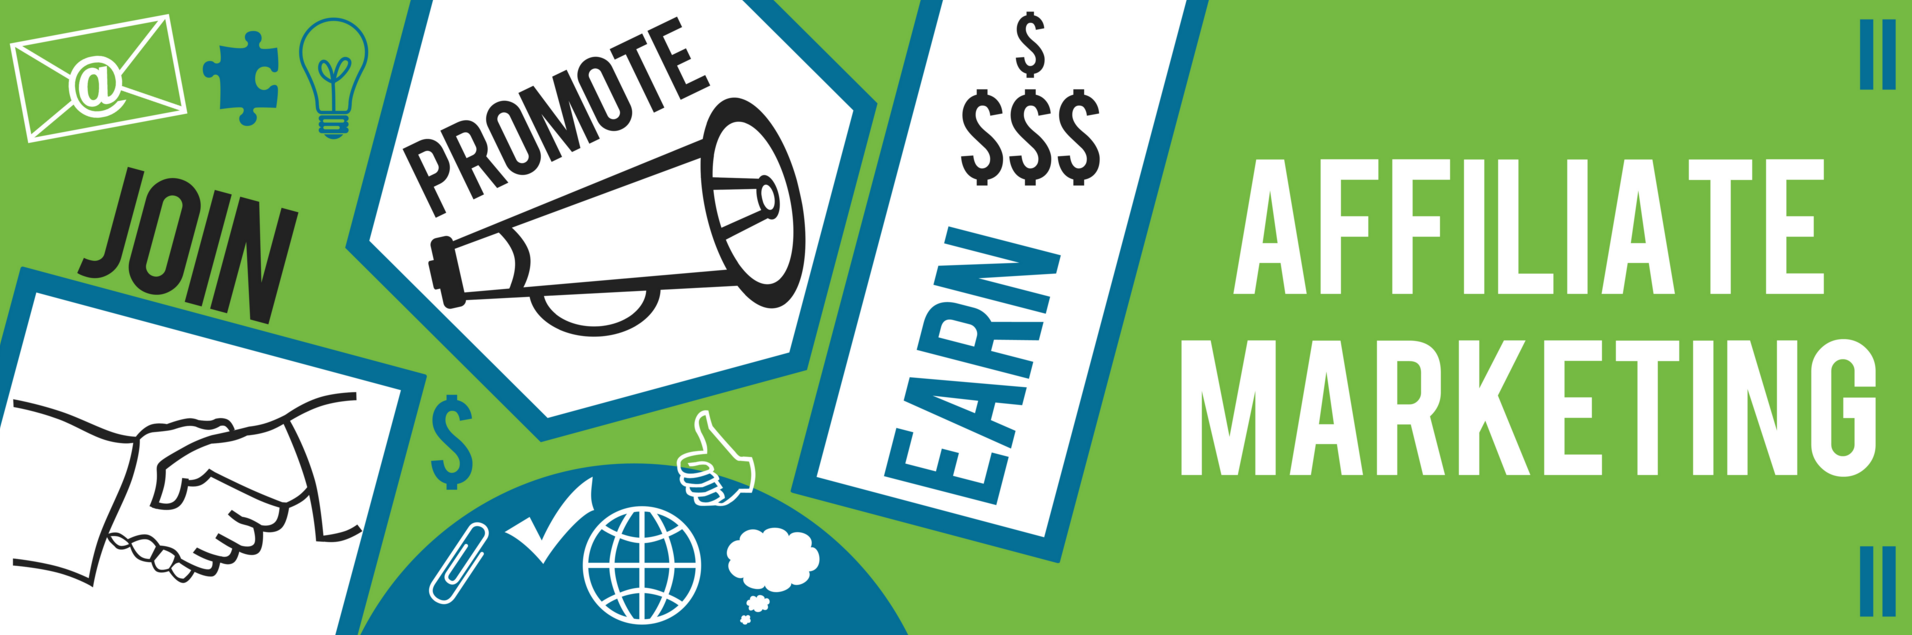 What Is Affiliate Marketing? – How To Get Started Guide